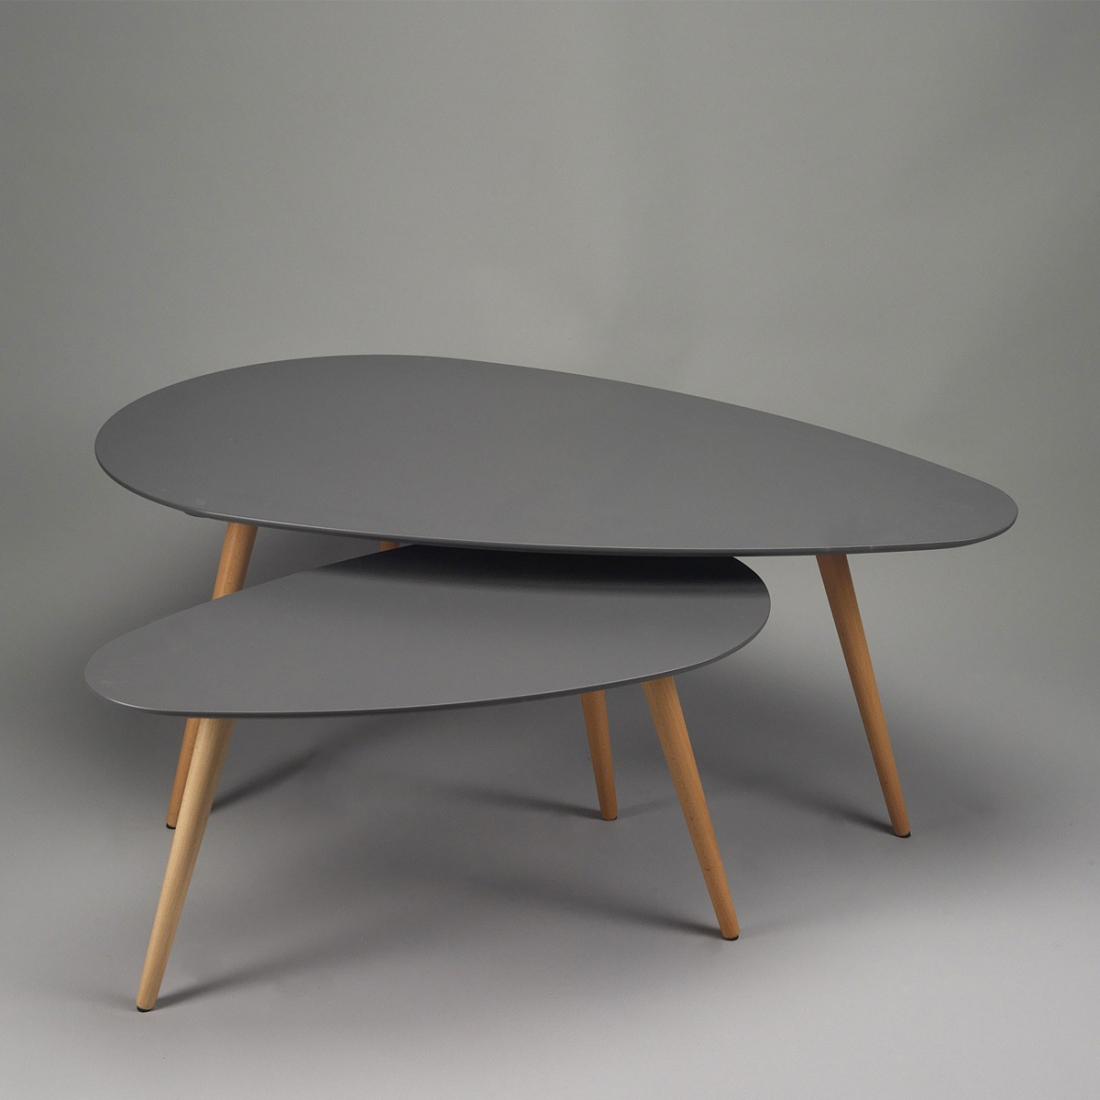 Tables basses gigognes design zendart design - Tables basses gigognes design ...